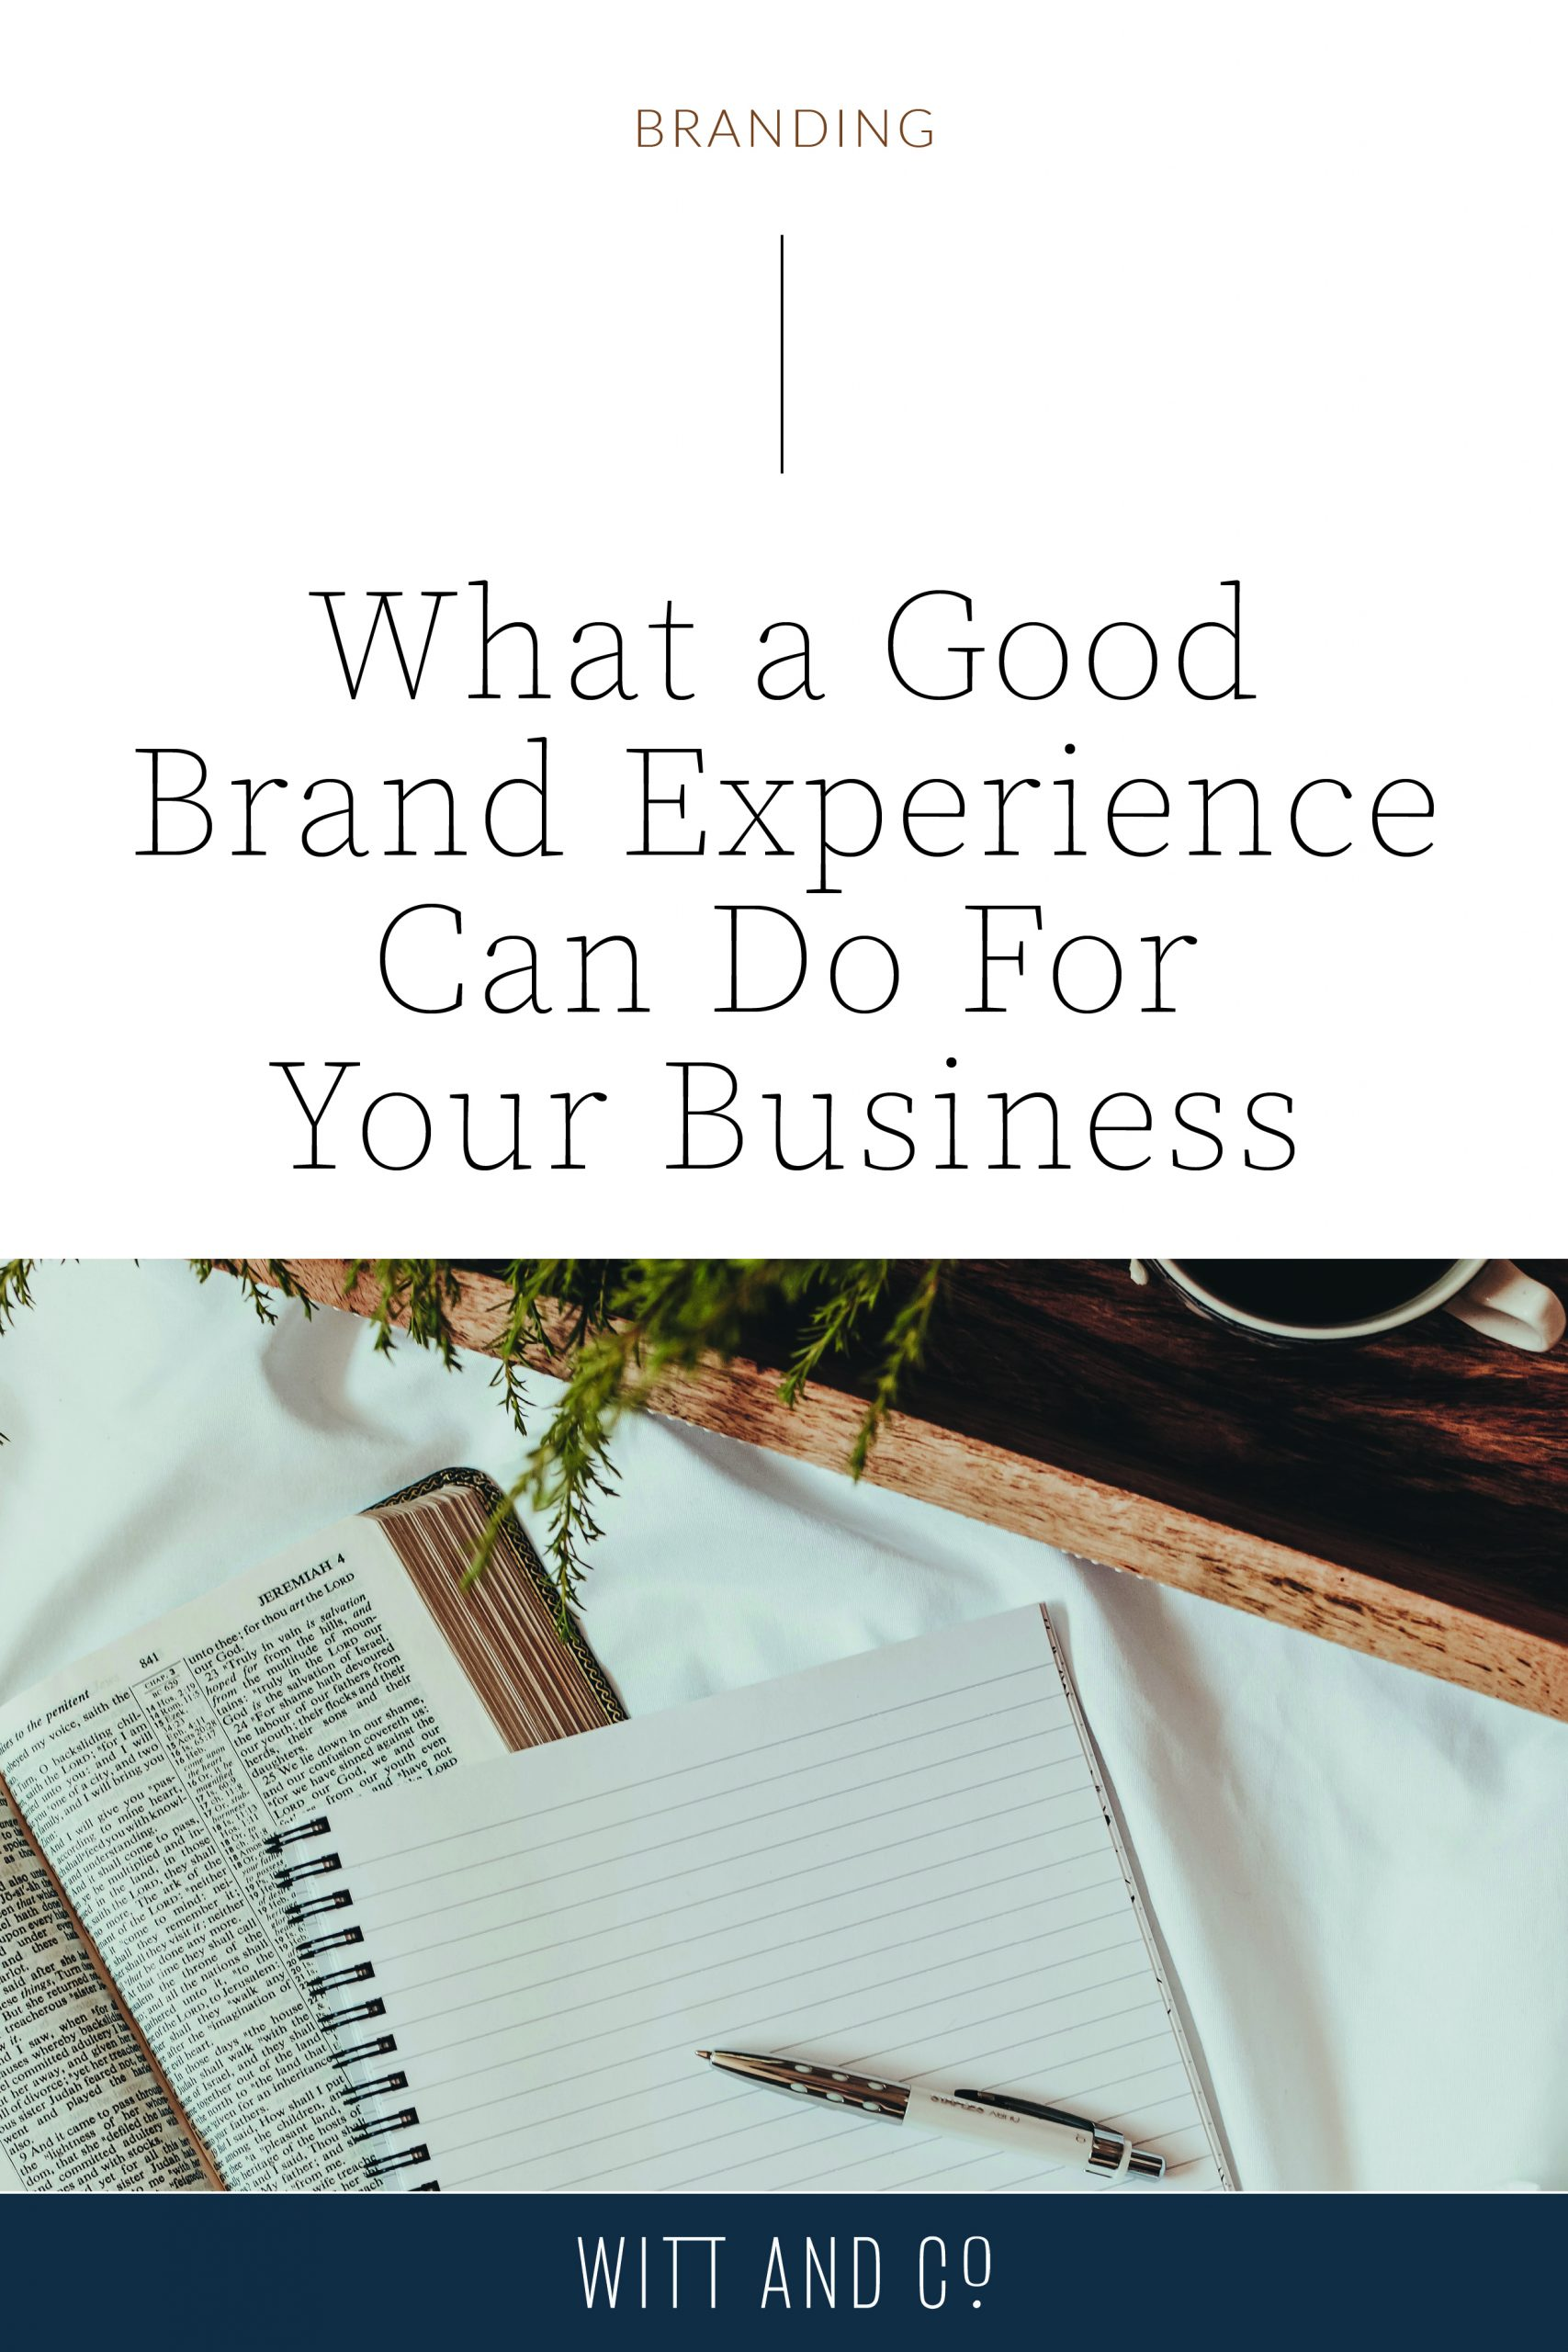 What a Good Brand Experience Can Do For Your Business